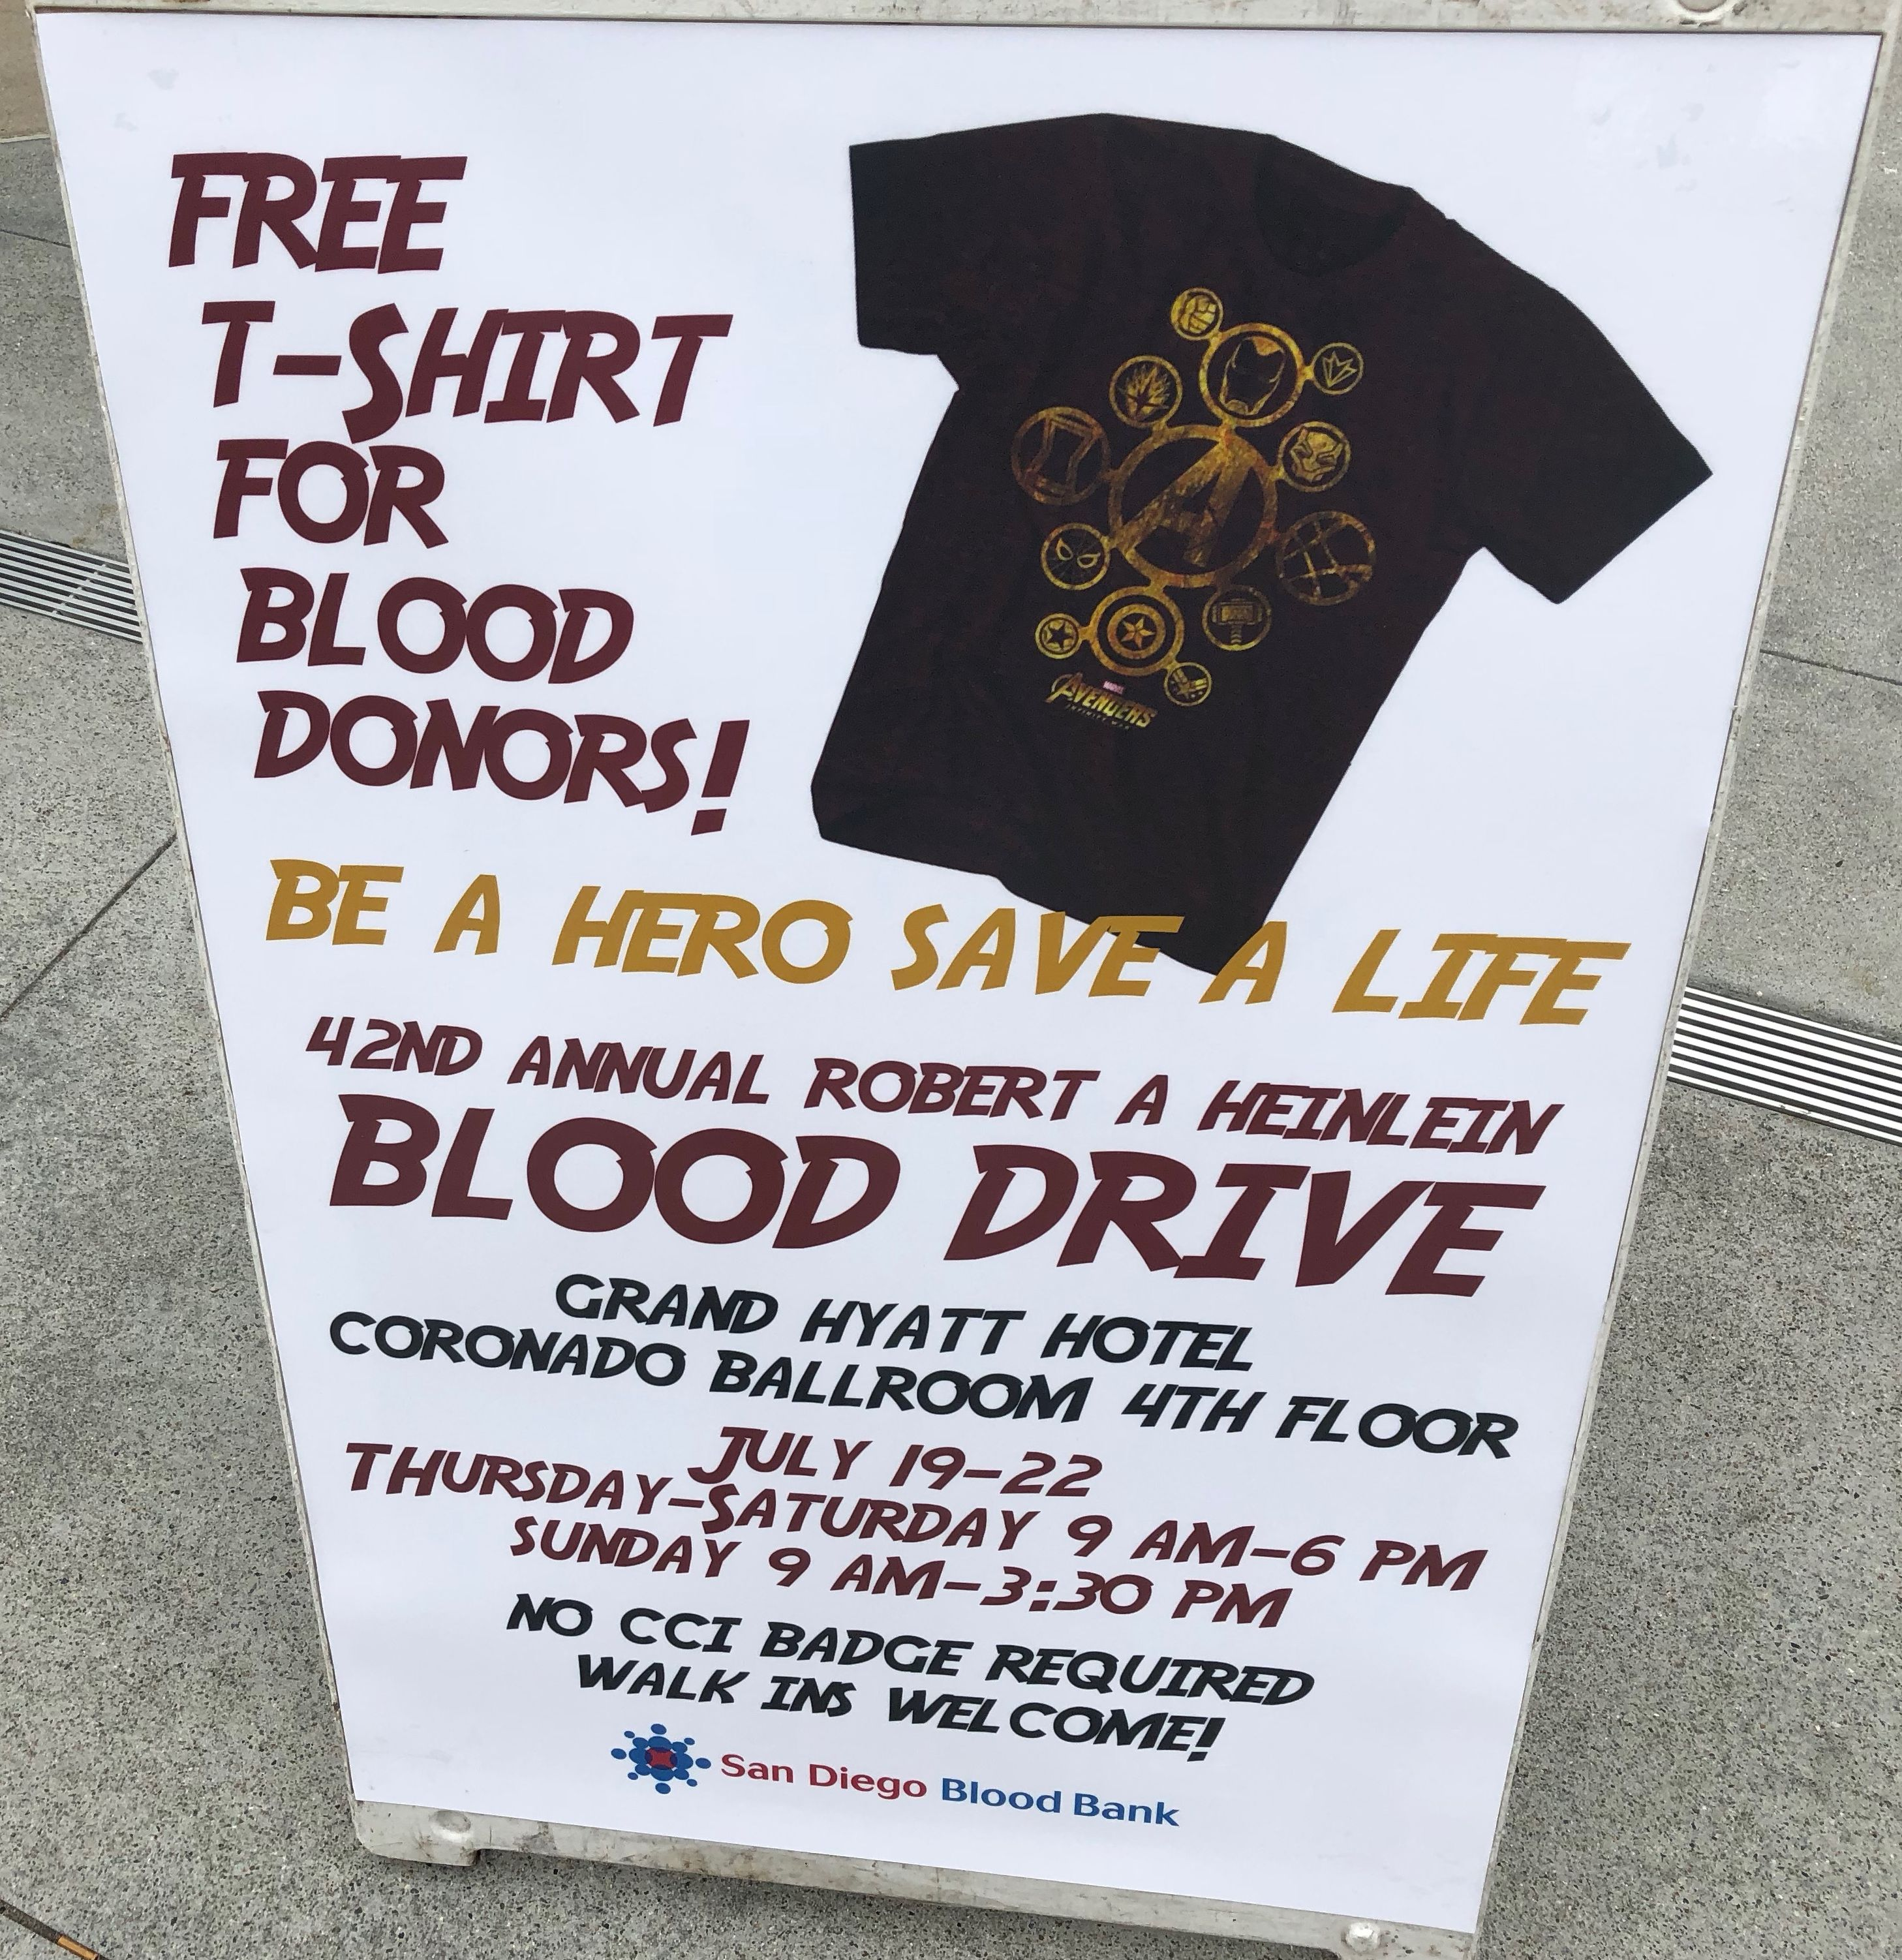 Comic Con Freebie Give Blood Score An Exclusive Marvel Avengers T